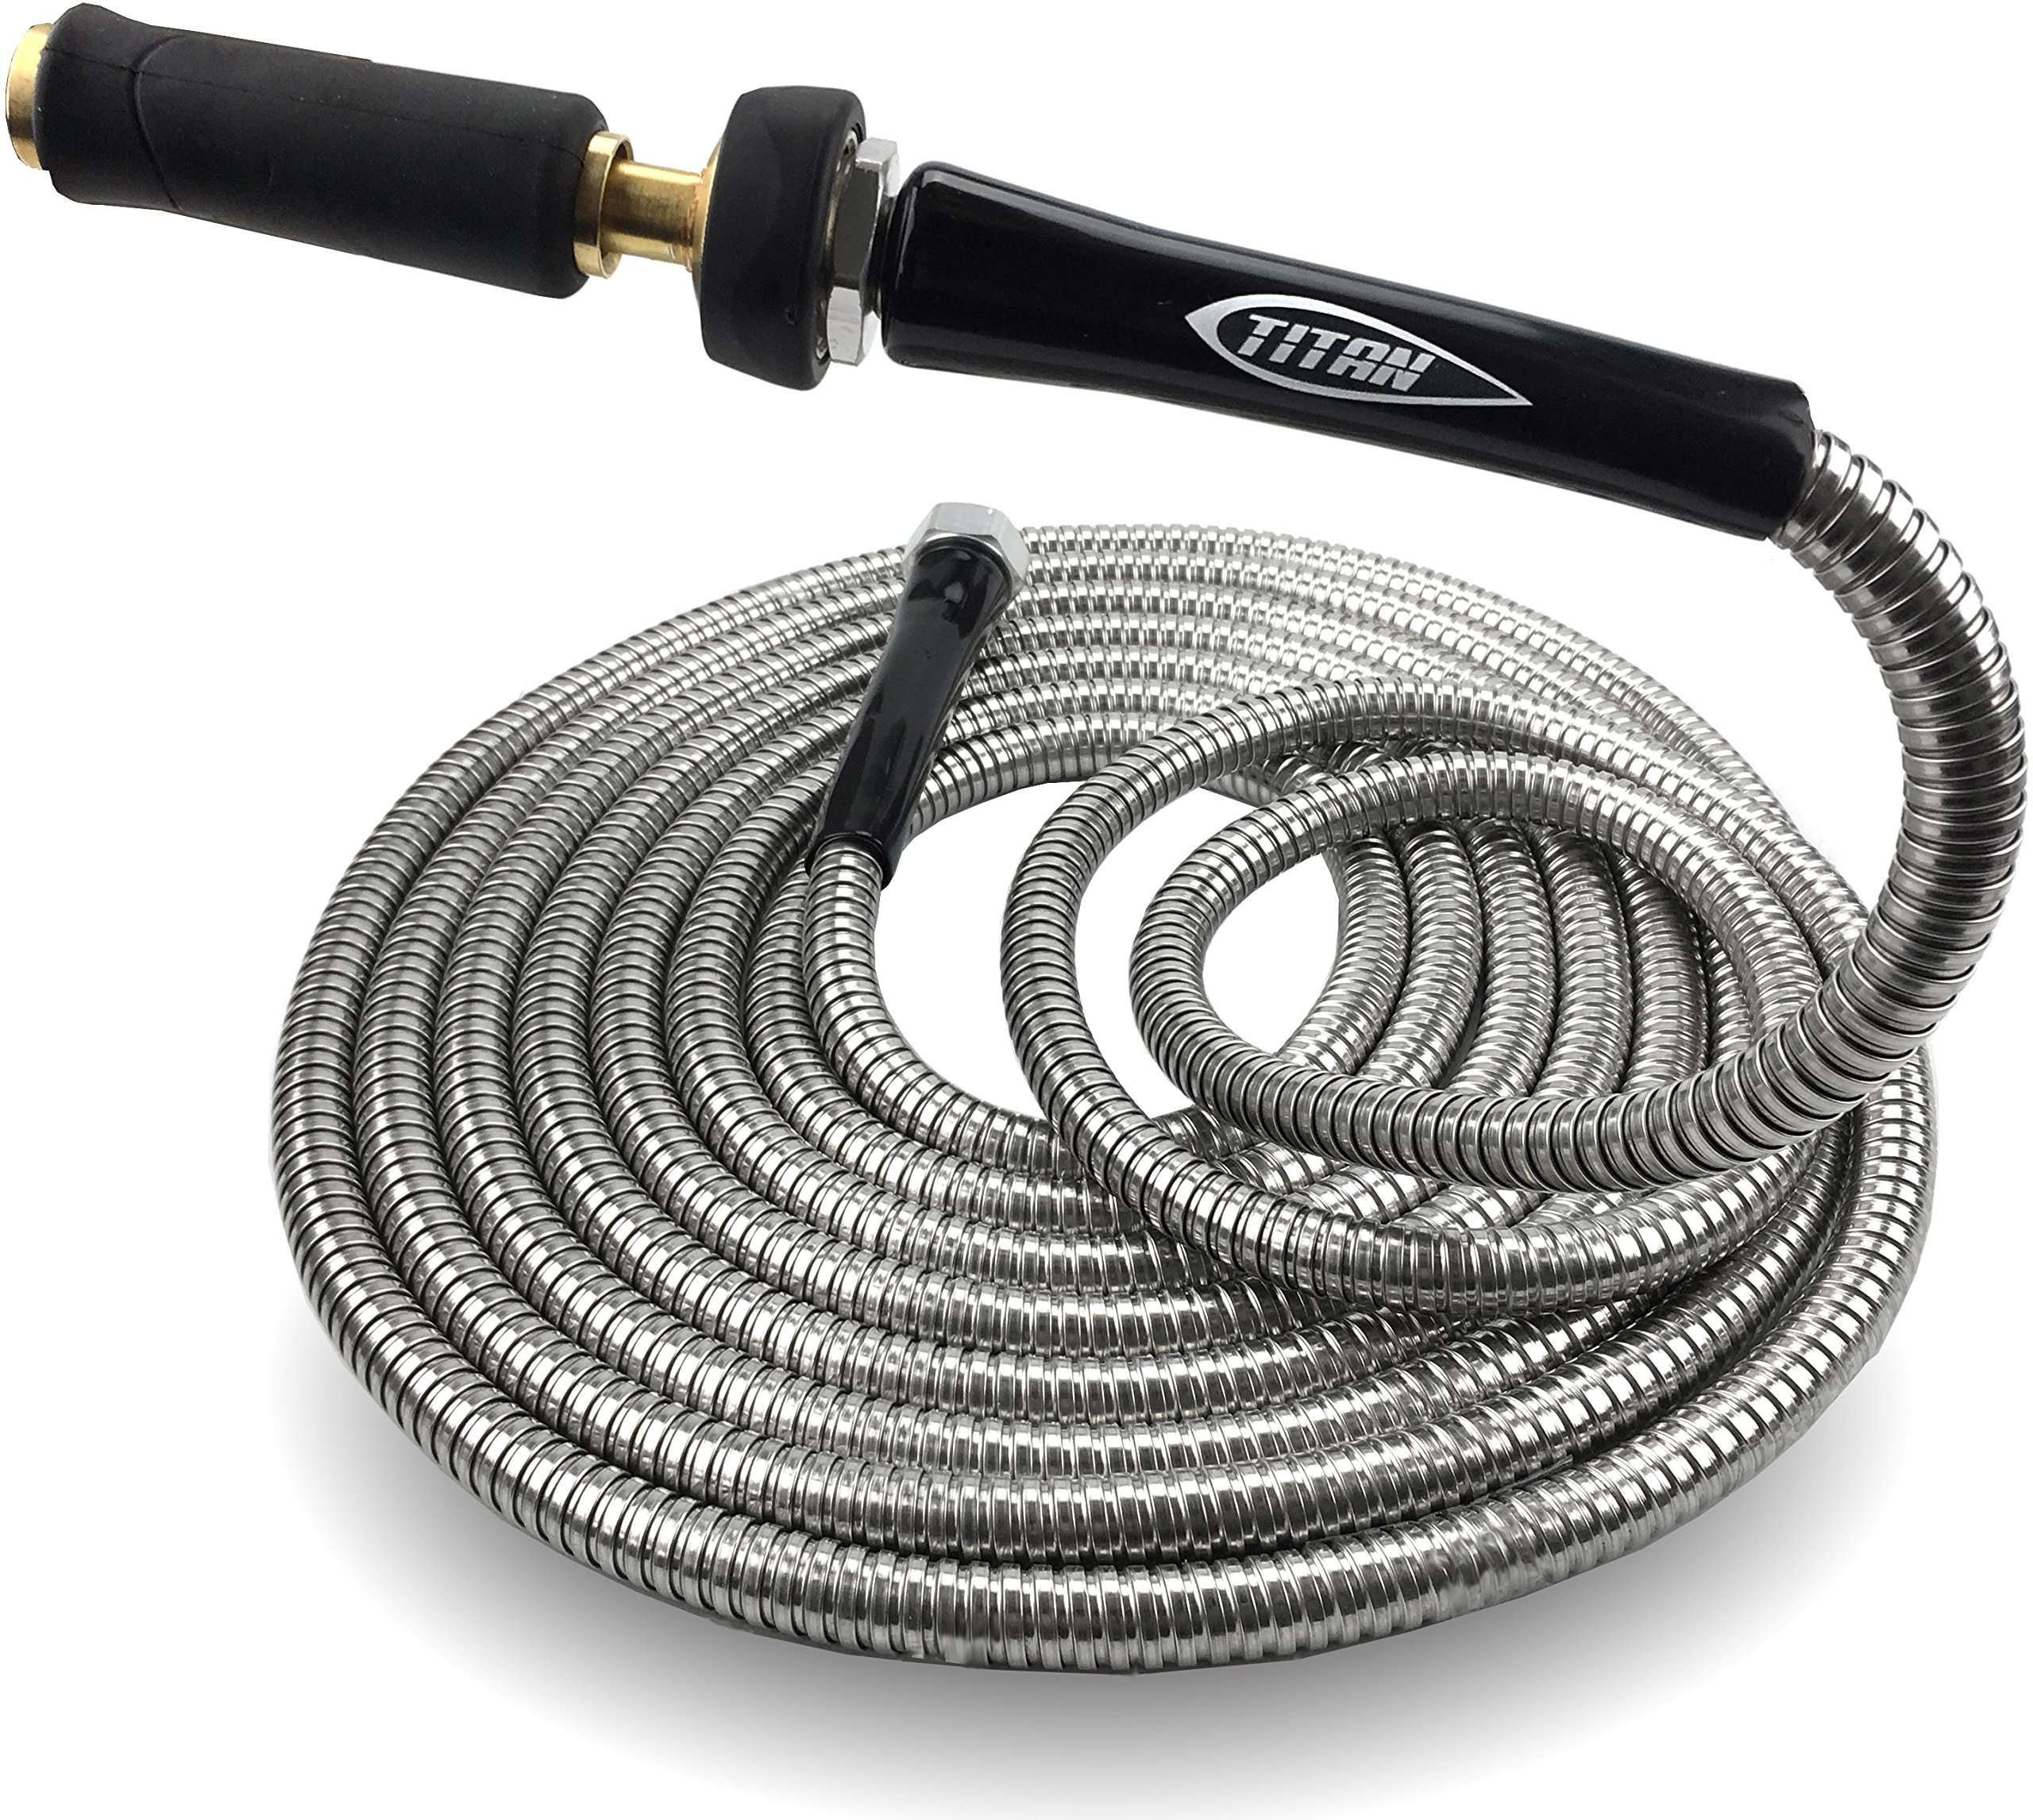 Titan 100FT Heavy Duty 304 Stainless Steel Garden Hose by BONUS Solid Brass Watering Nozzle Lightweight Kink-Free Strong Durable Metal Outer Layer